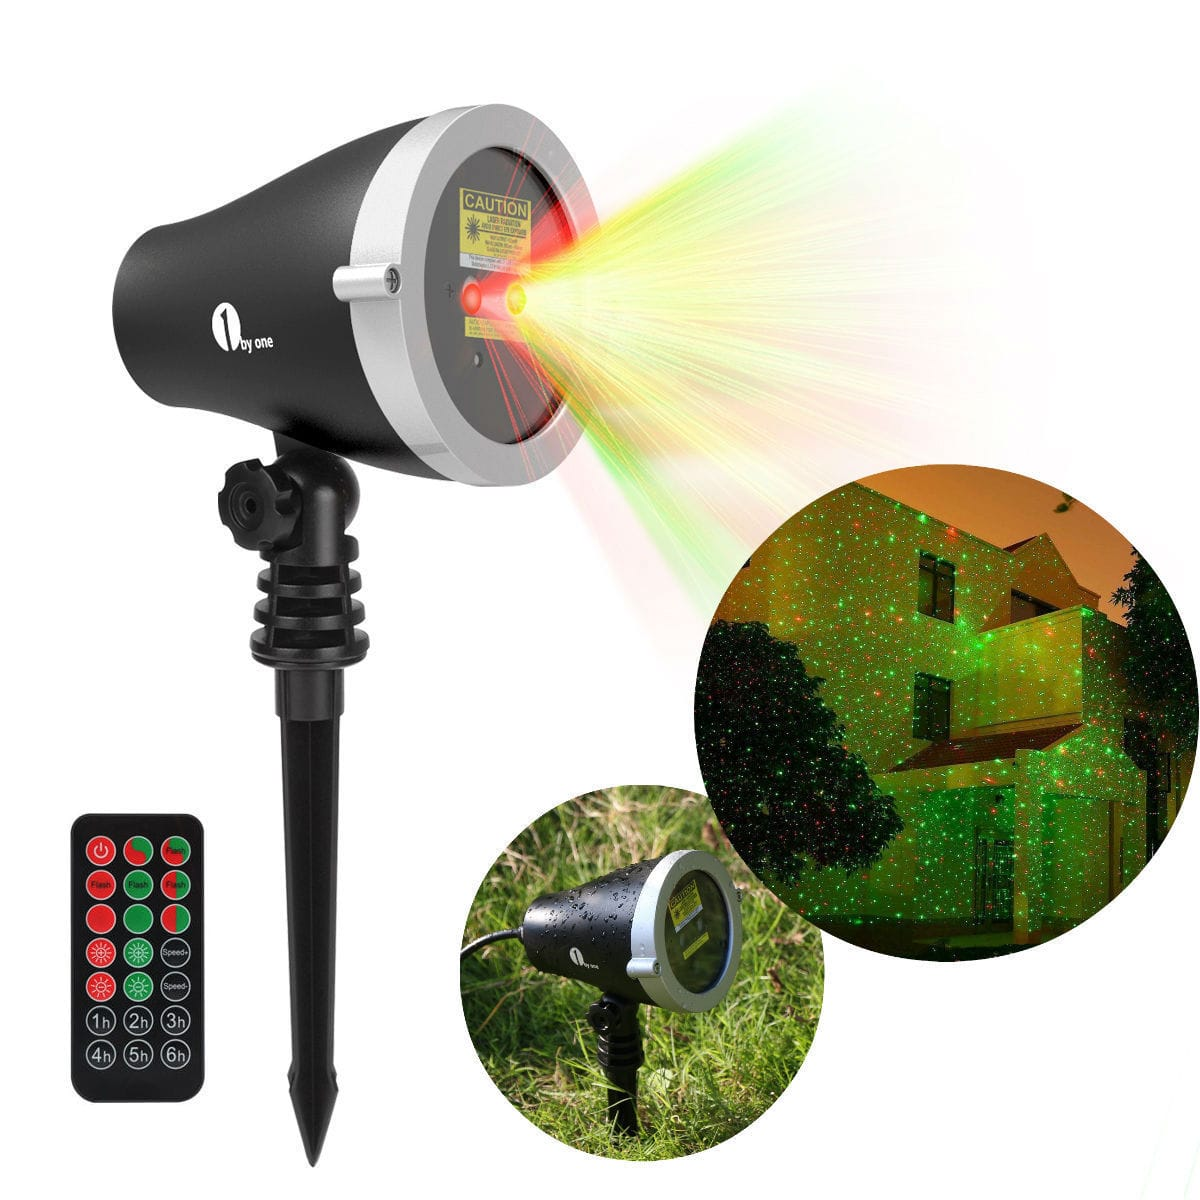 Laser Projector Stage Lights LED R&G Lighting for Christmas, Parties, backyard, etc. $20.00